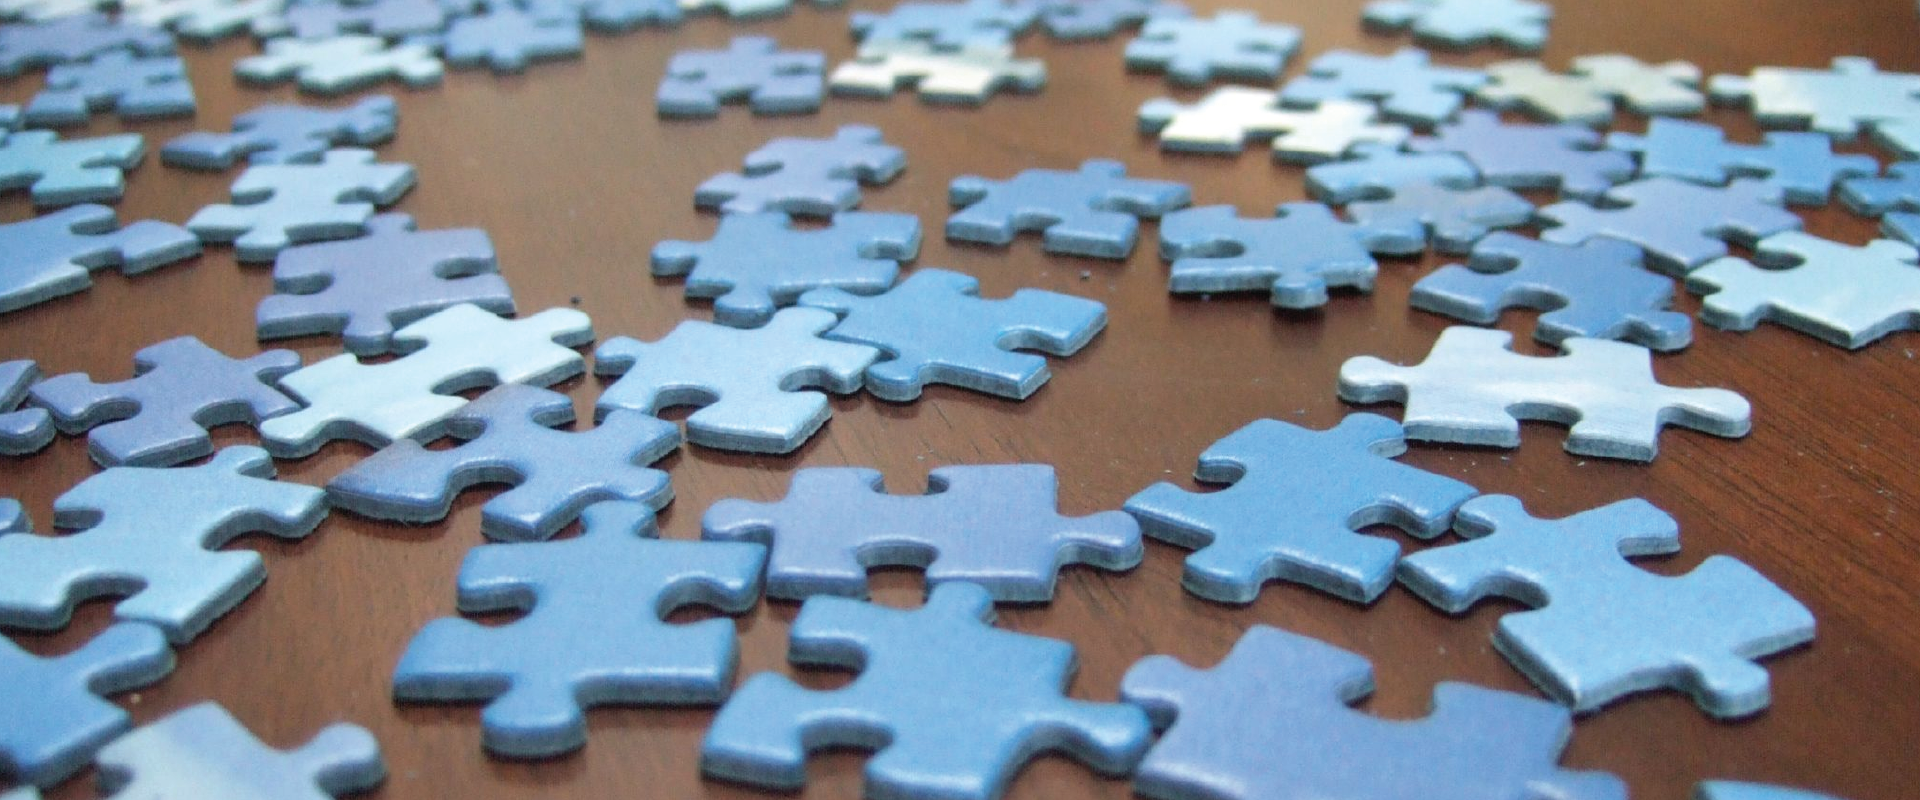 Header_Concept_Puzzle-03.png